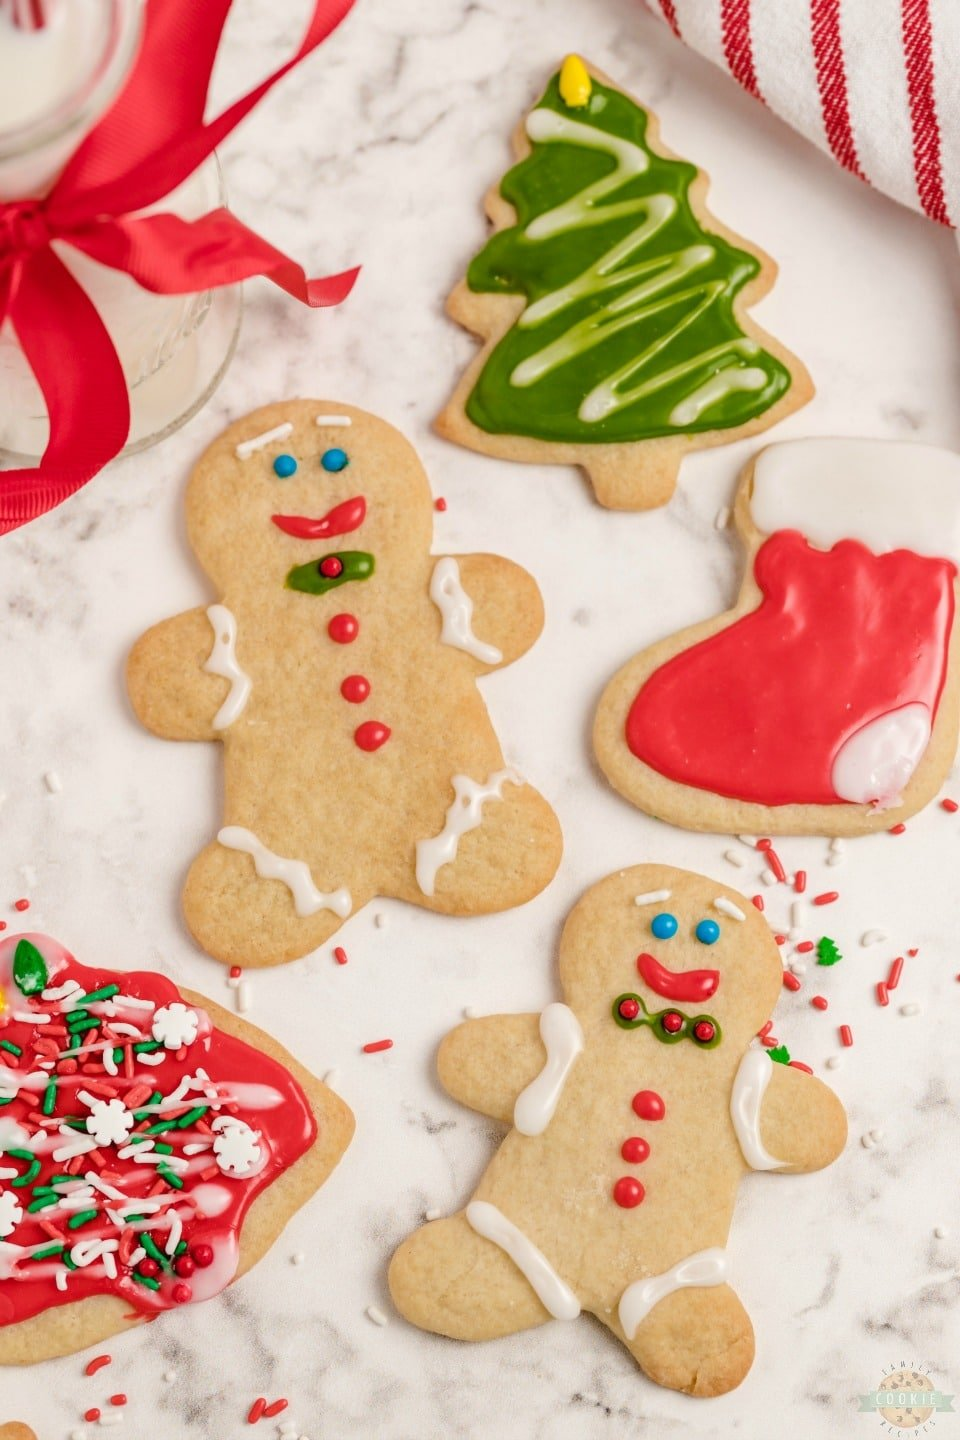 1632466192_536_CHRISTMAS-CUT-OUT-COOKIES